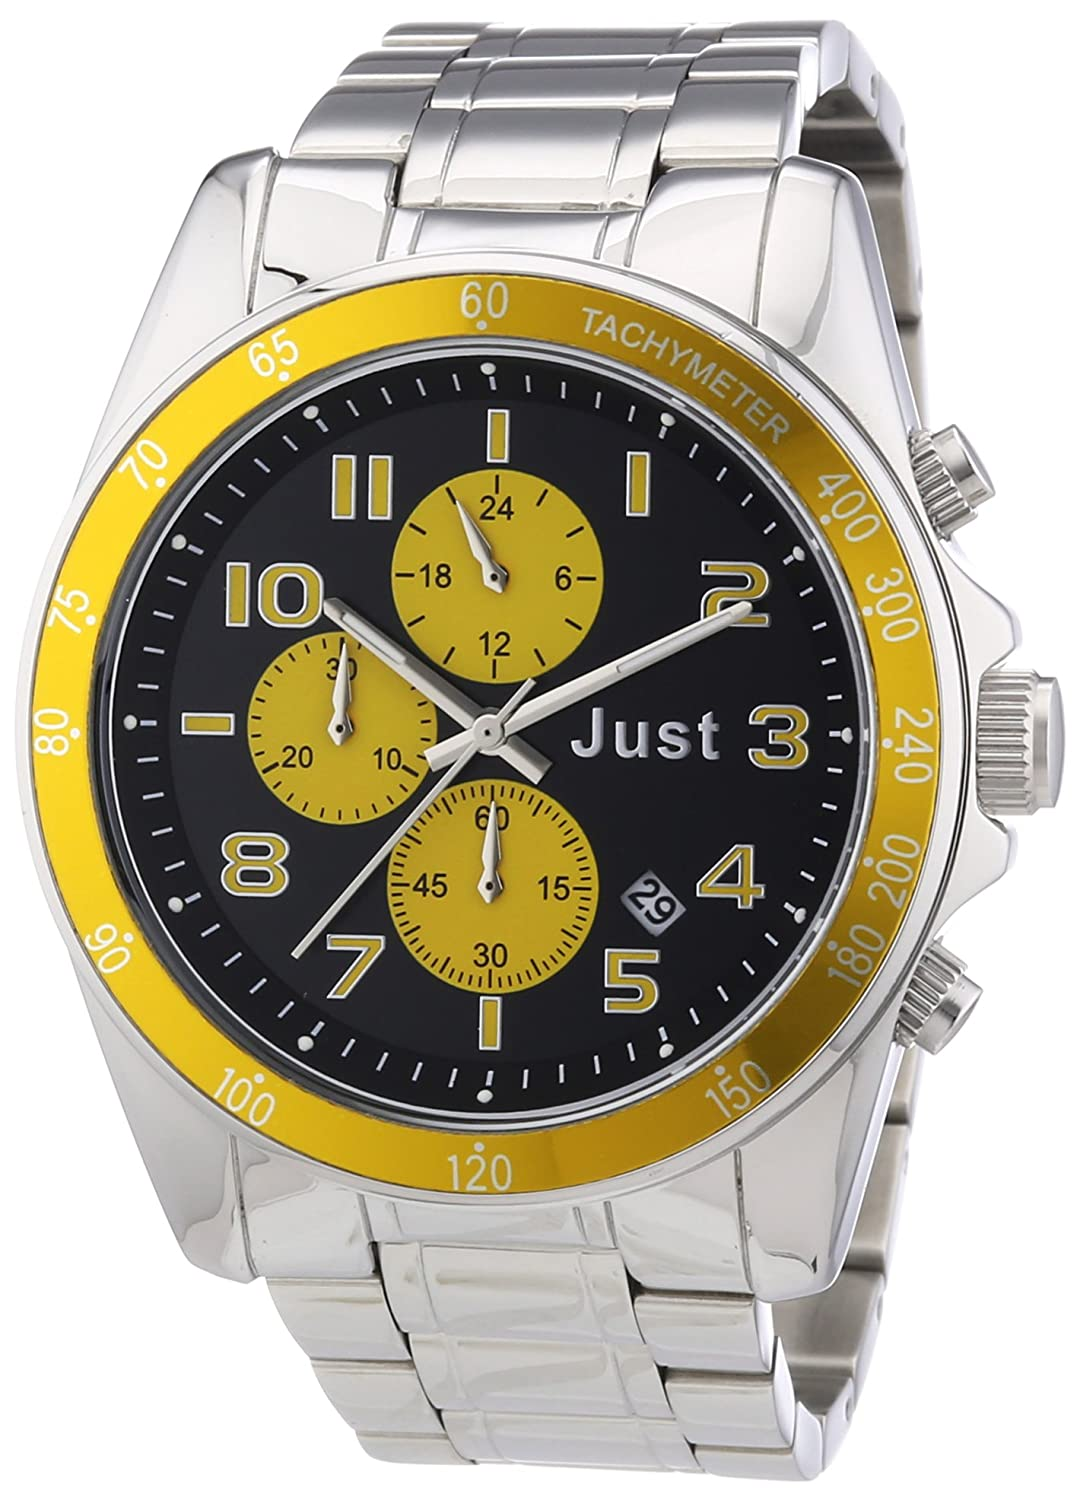 Just Watches 48-S1230-YL - Reloj analógico de cuarzo unisex, correa de acero inoxidable color plateado